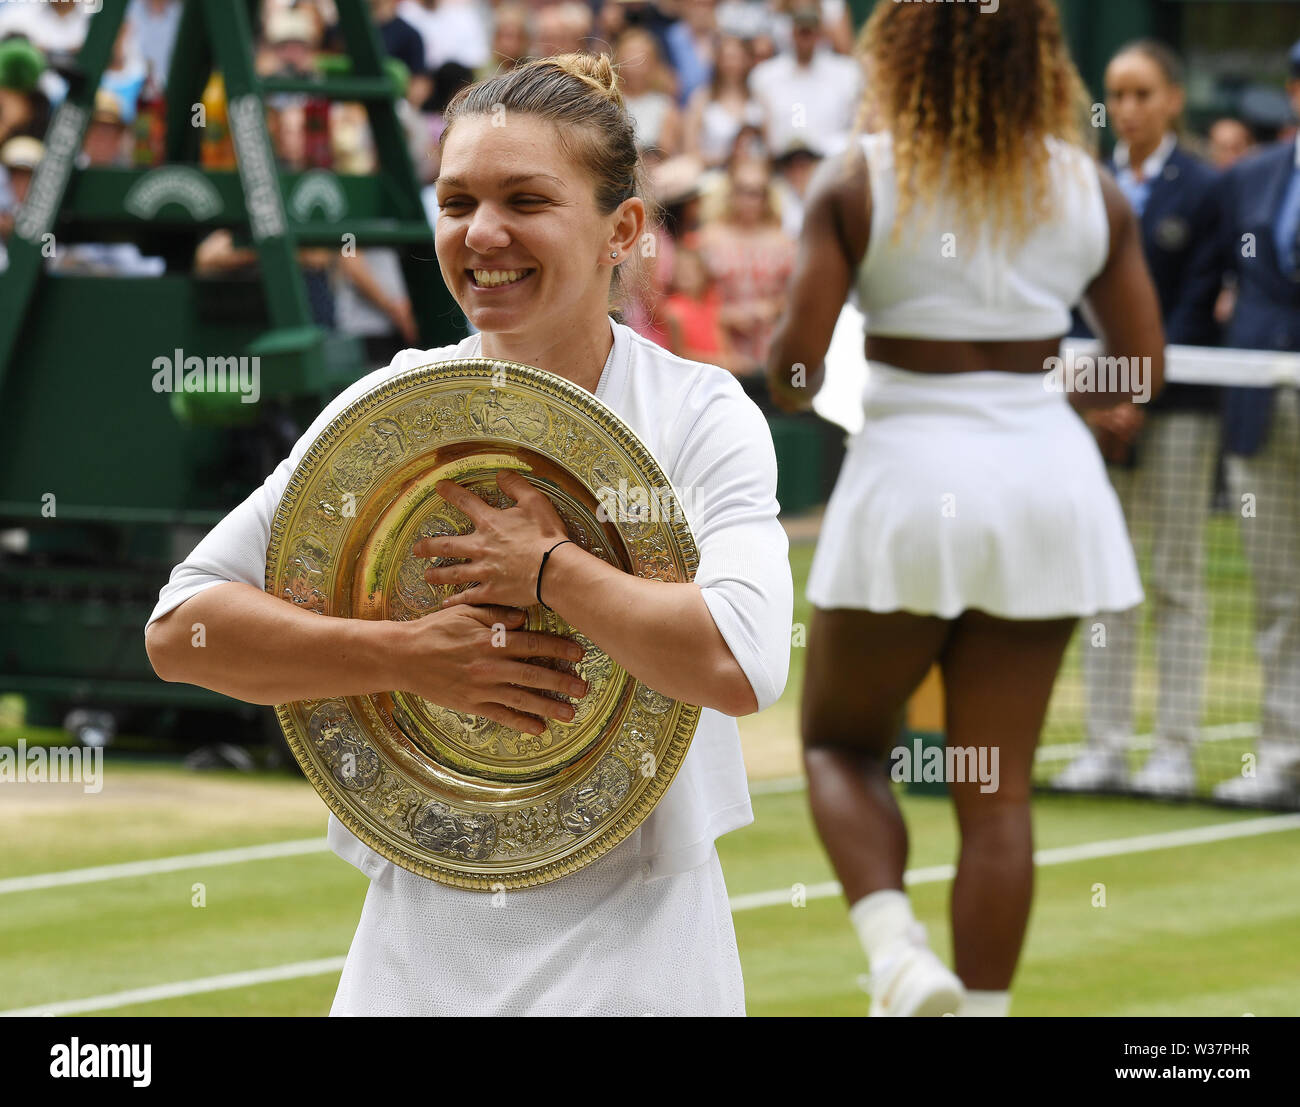 London, UK. 13th July, 2019. The Championships Wimbledon 2019 13072019 Simona Halep hugs winners trophy the Venus rosewater Dish after she wins Ladies Singles Final, and her beaten opponent Serena Williams leaves centre court. Credit: Roger Parker/Alamy Live News - Stock Image